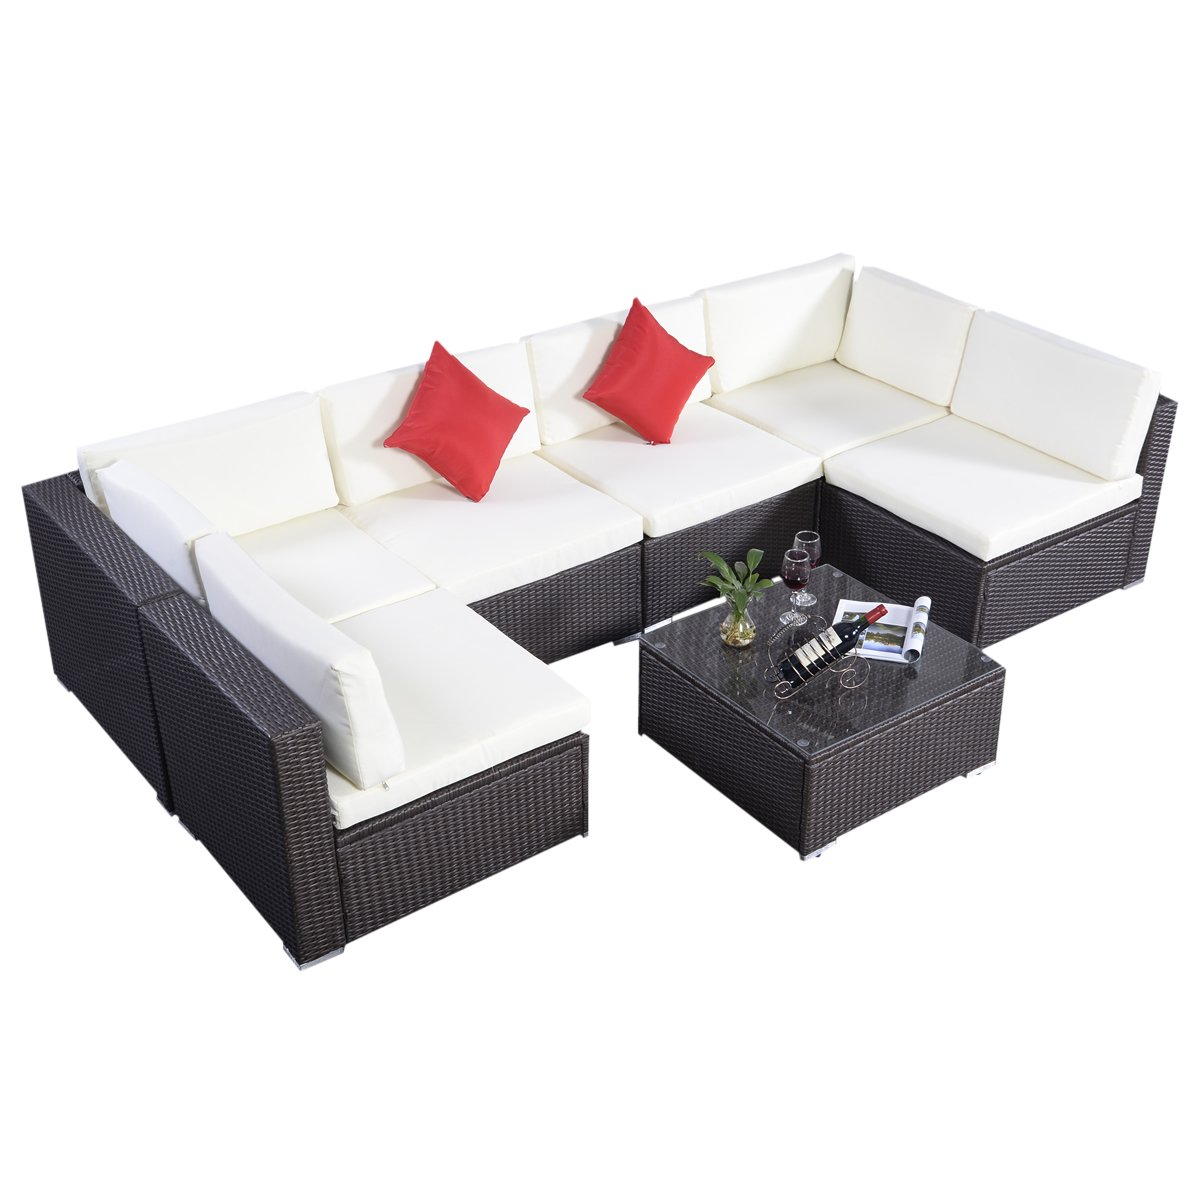 Poly rattan lounge gartenm bel sitzgarnitur lounge set for Lounge gartenmobel rattan